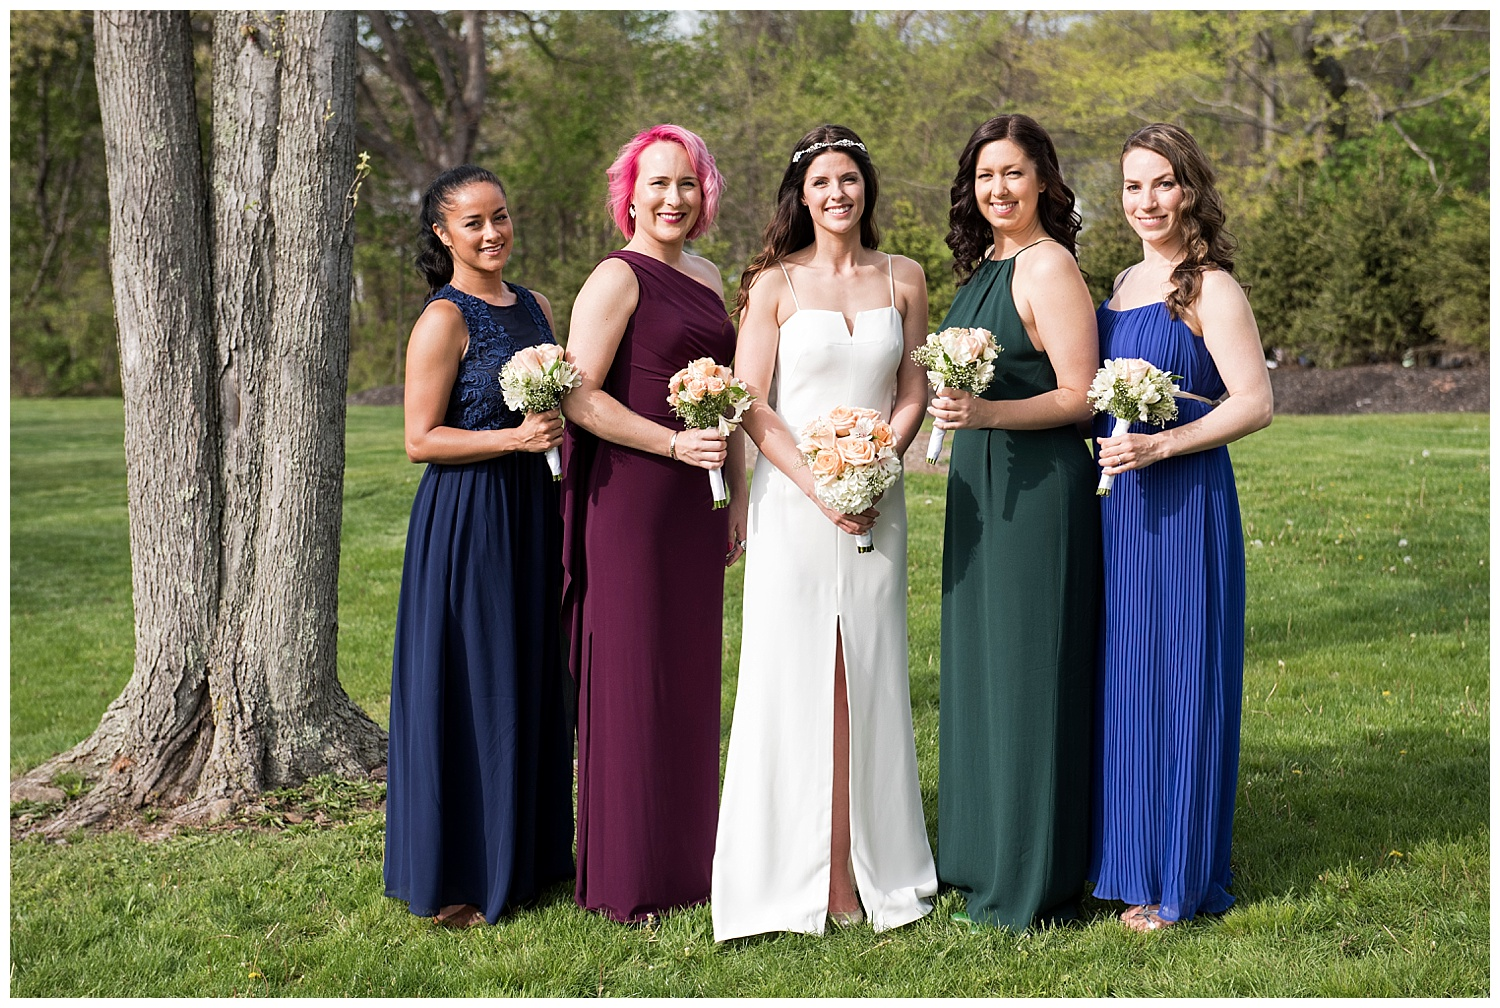 Beautiful Bridesmaids Photograph | Intimate Wedding Photographer | New York State Wedding Photographer | Farm Wedding Photographer | Apollo Fields Wedding Photojournalism